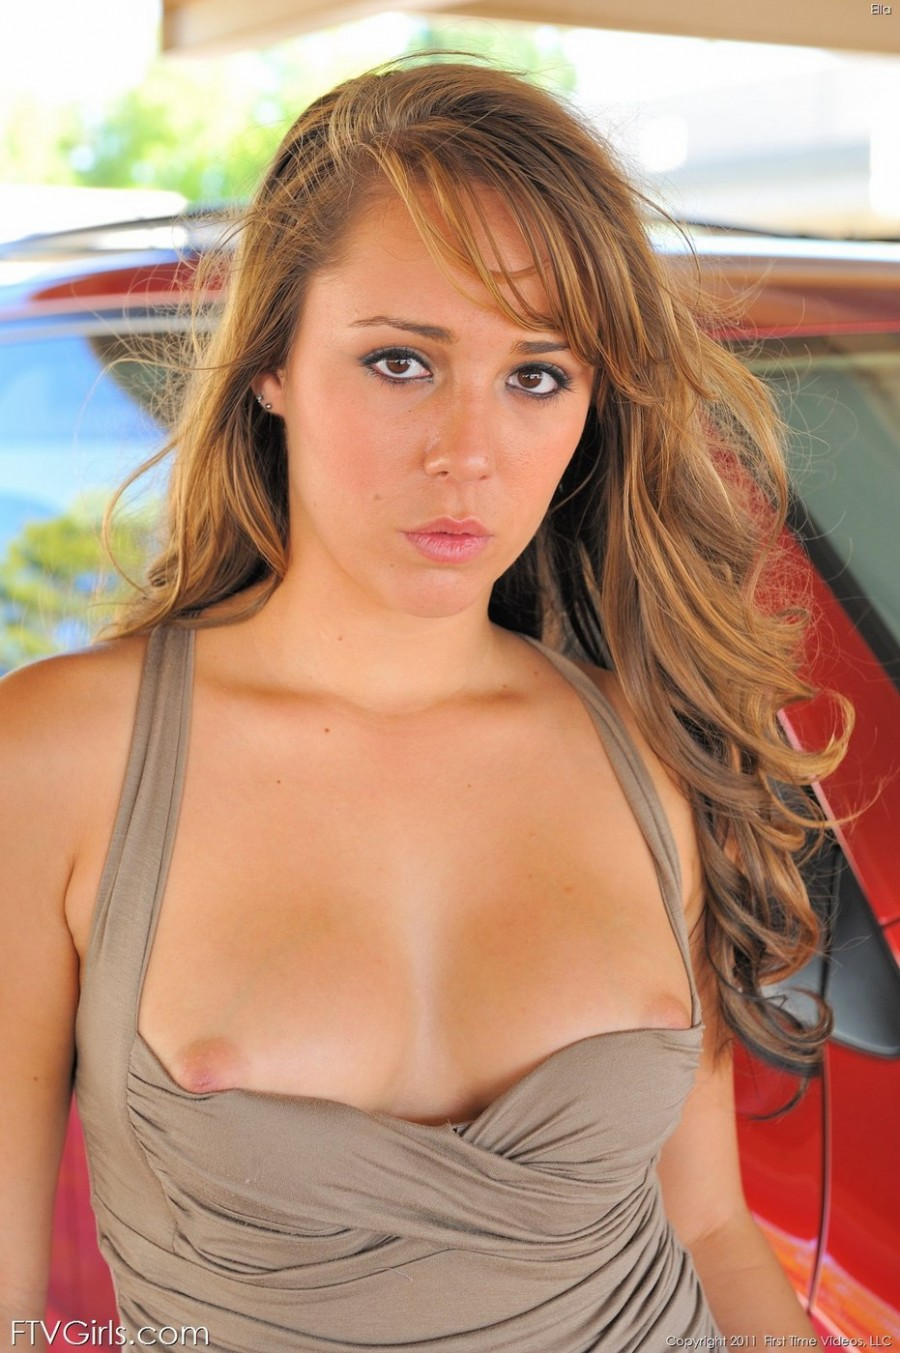 Sexy Babe Ella flashes near the car